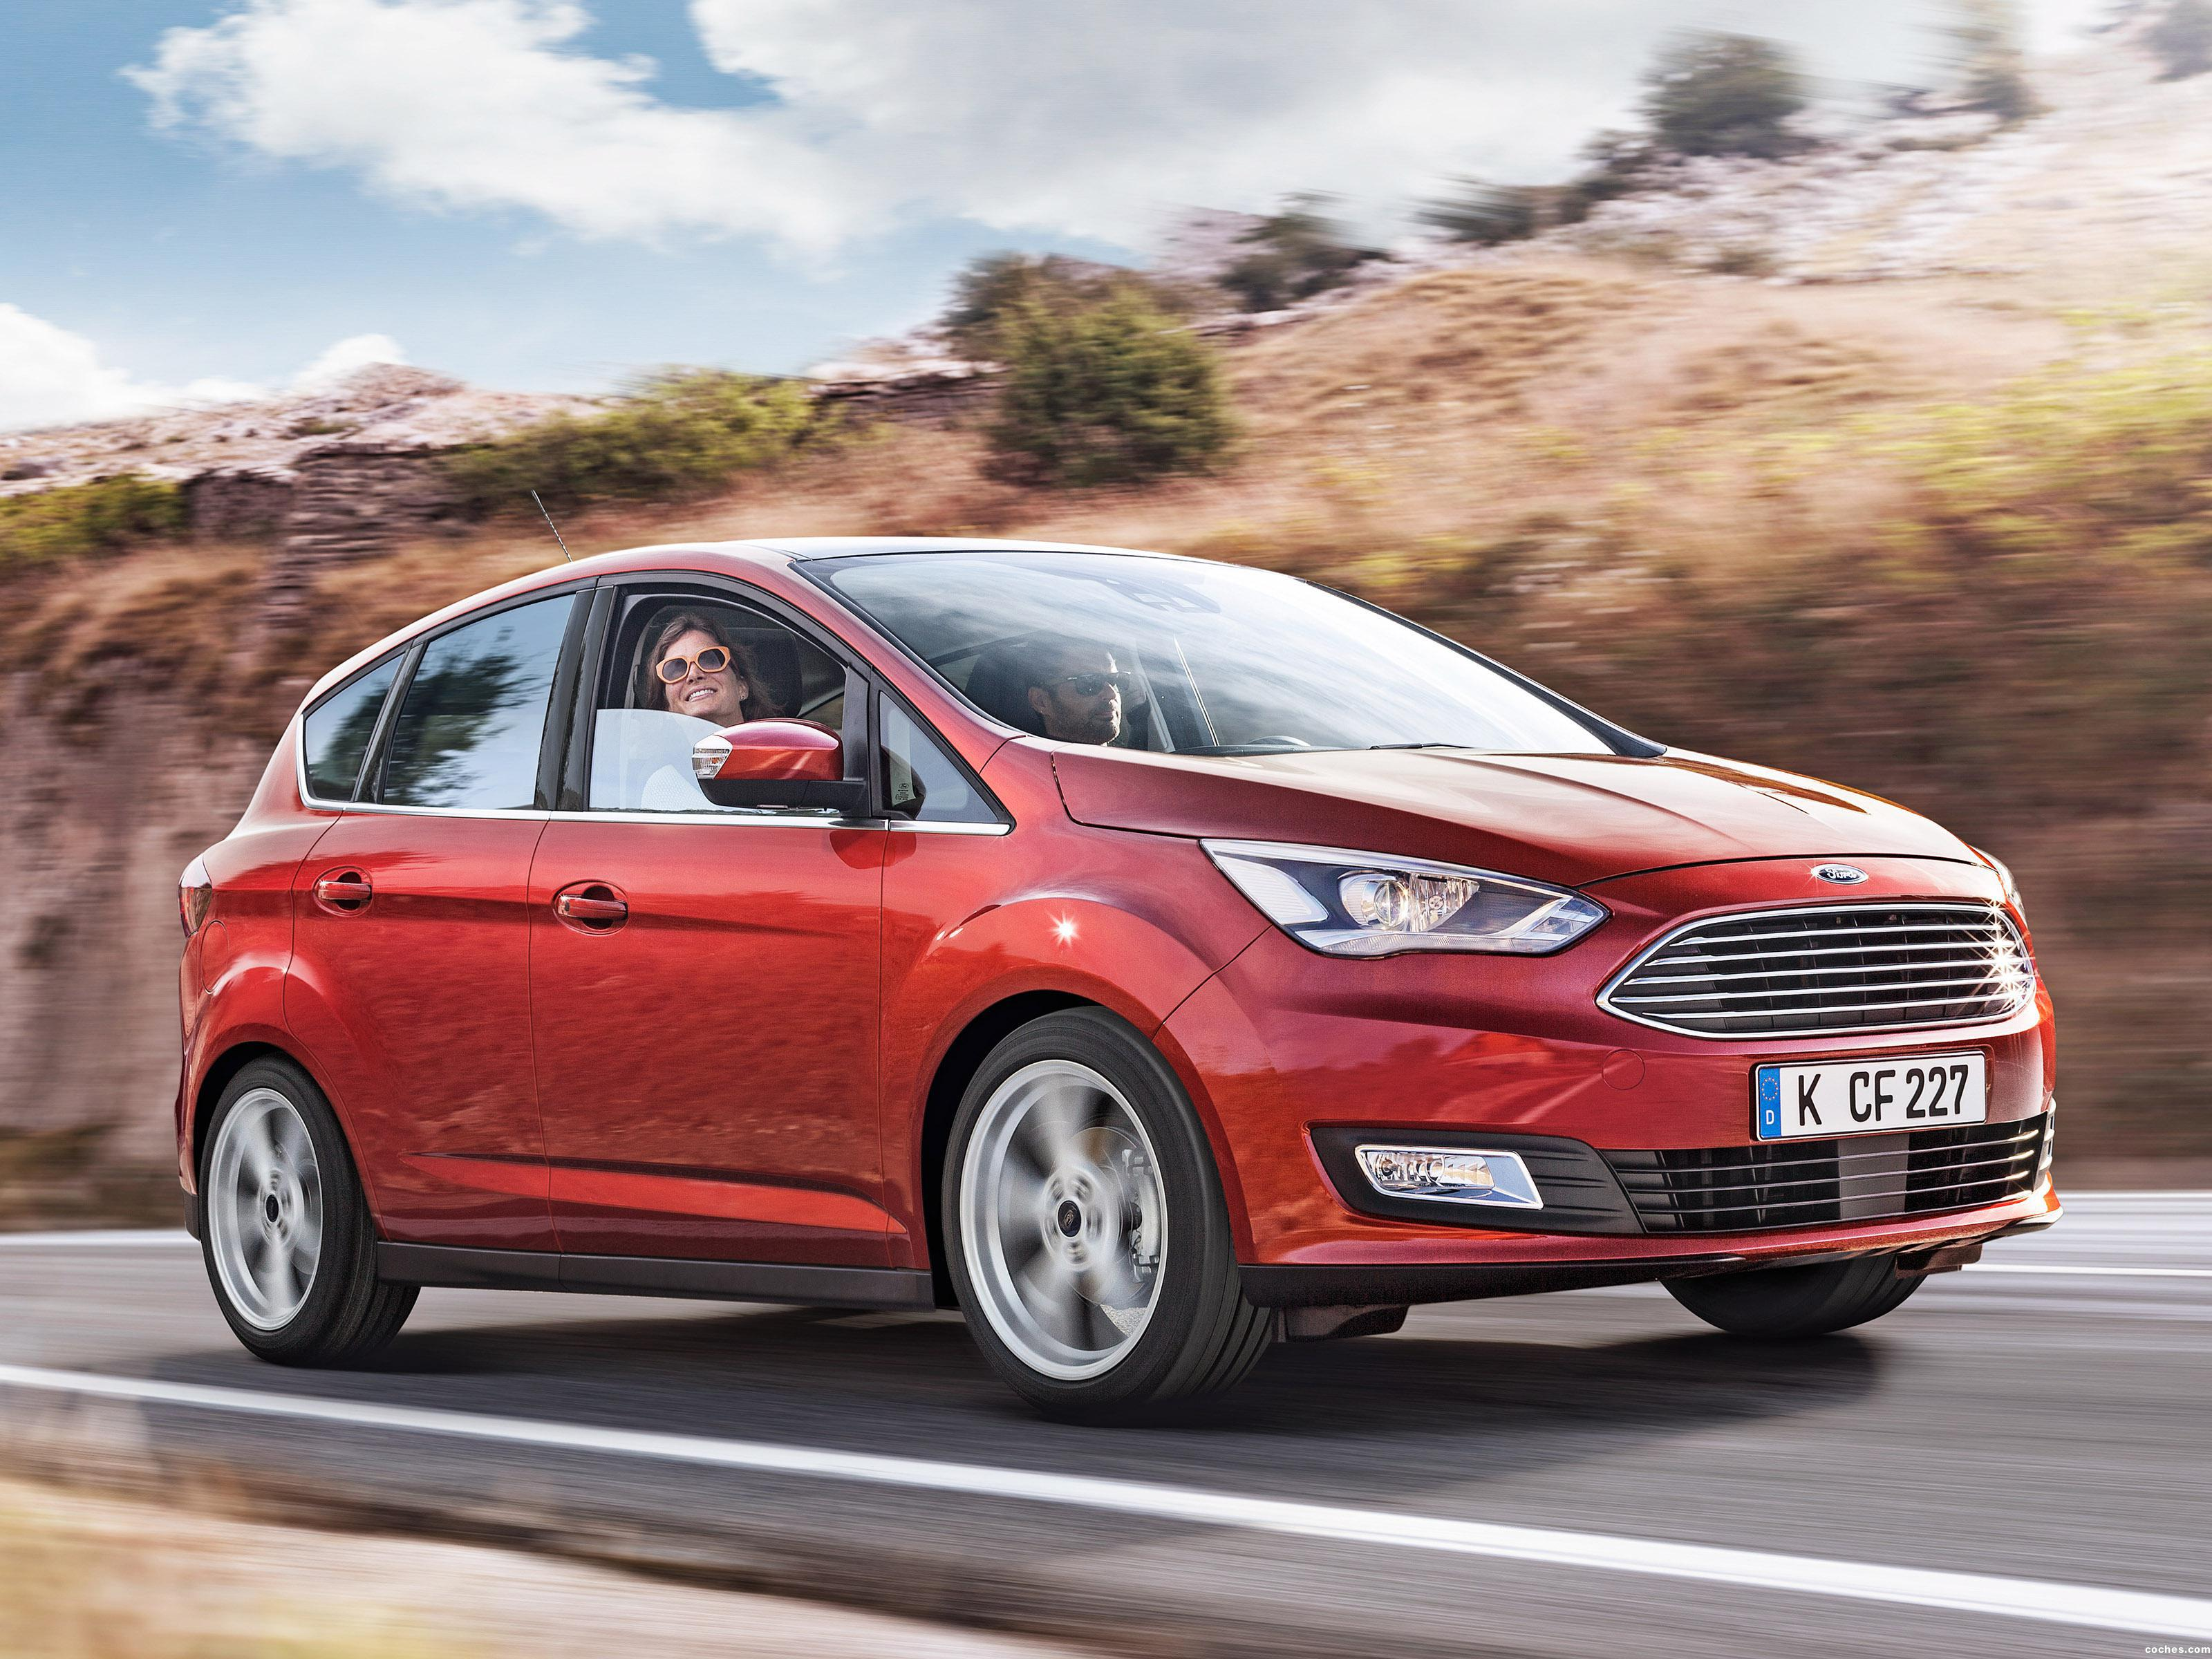 ford_c-max-2015_r11